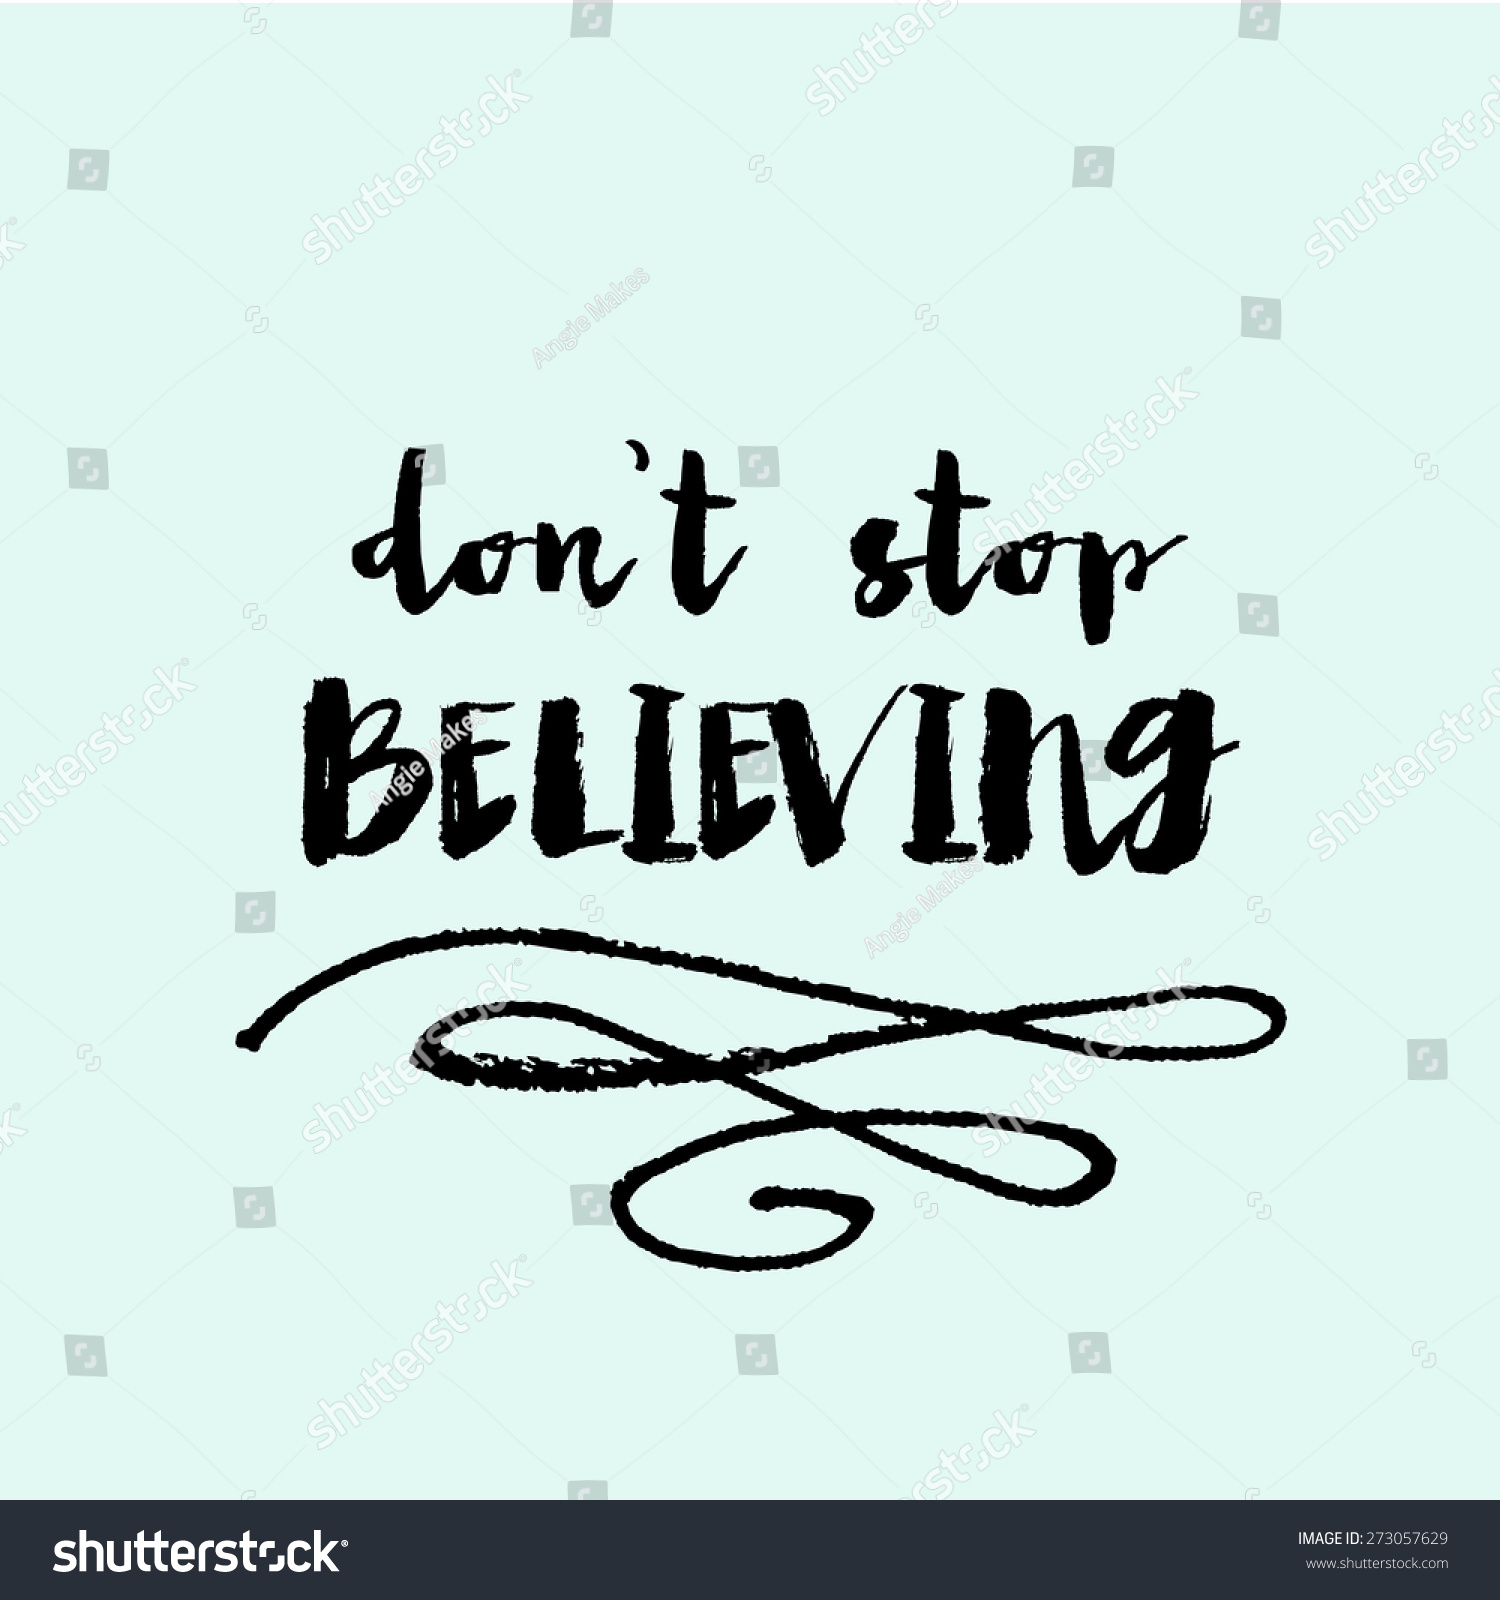 Stock Quote For T: Dont Stop Believing Quote Hand Brushed Stock Illustration